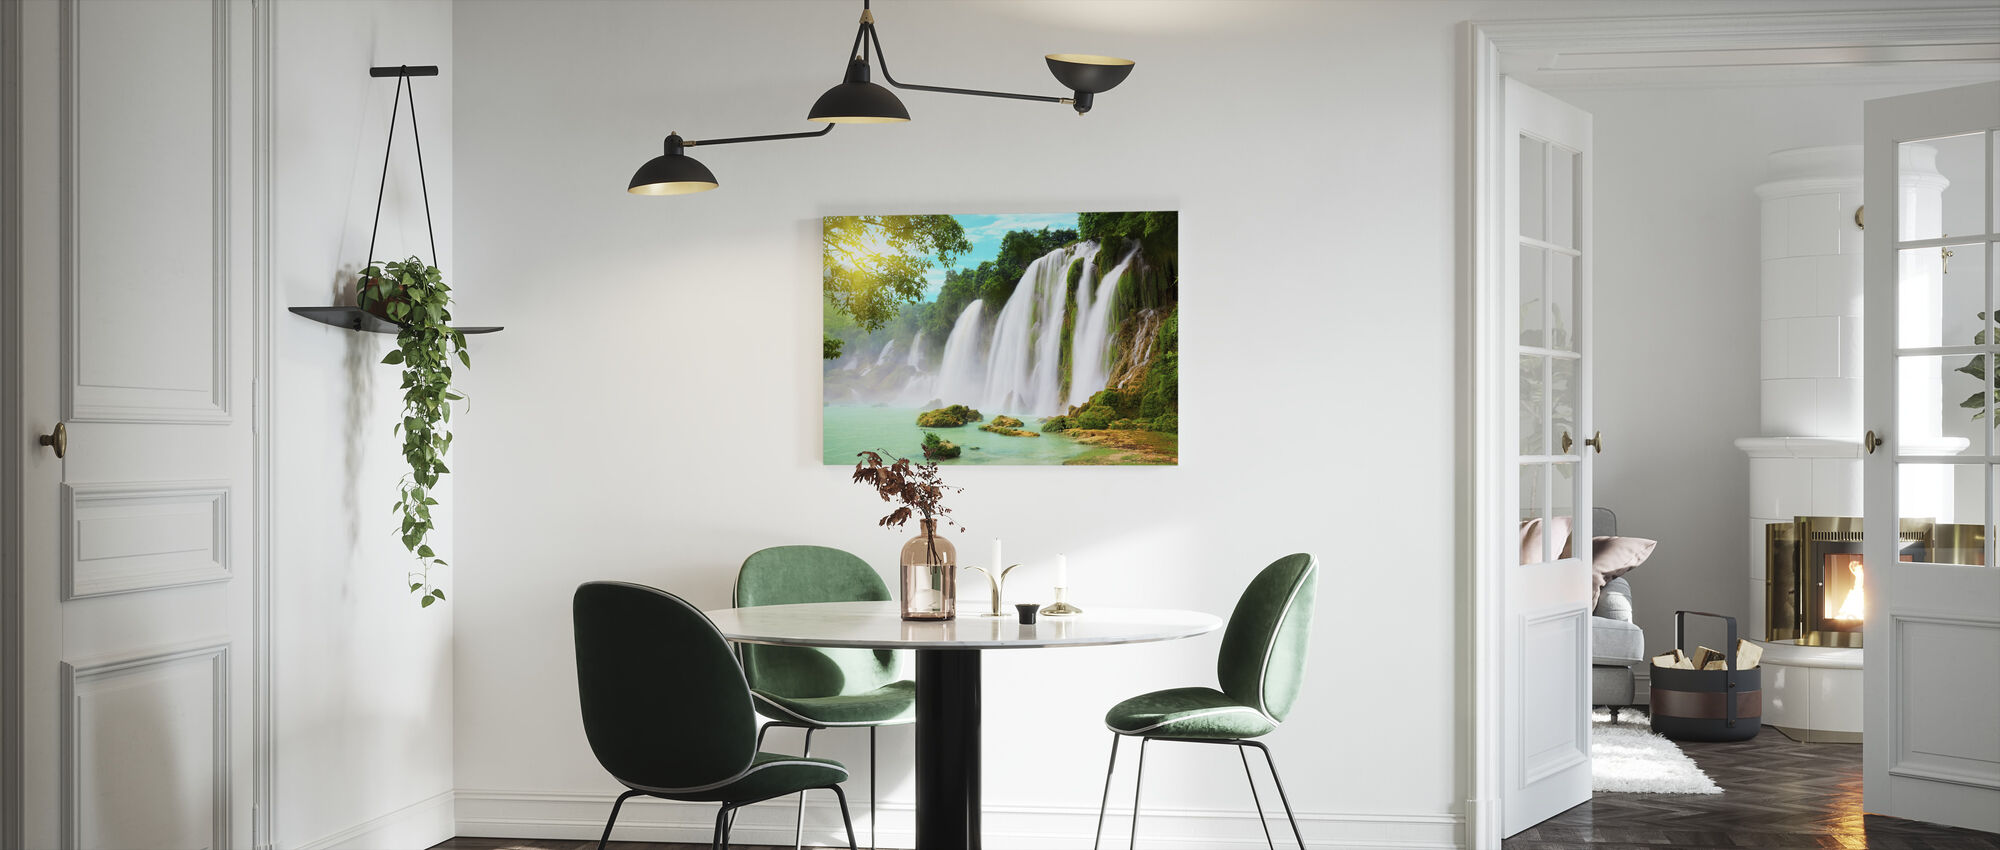 Detian Waterfall - Canvas print - Kitchen